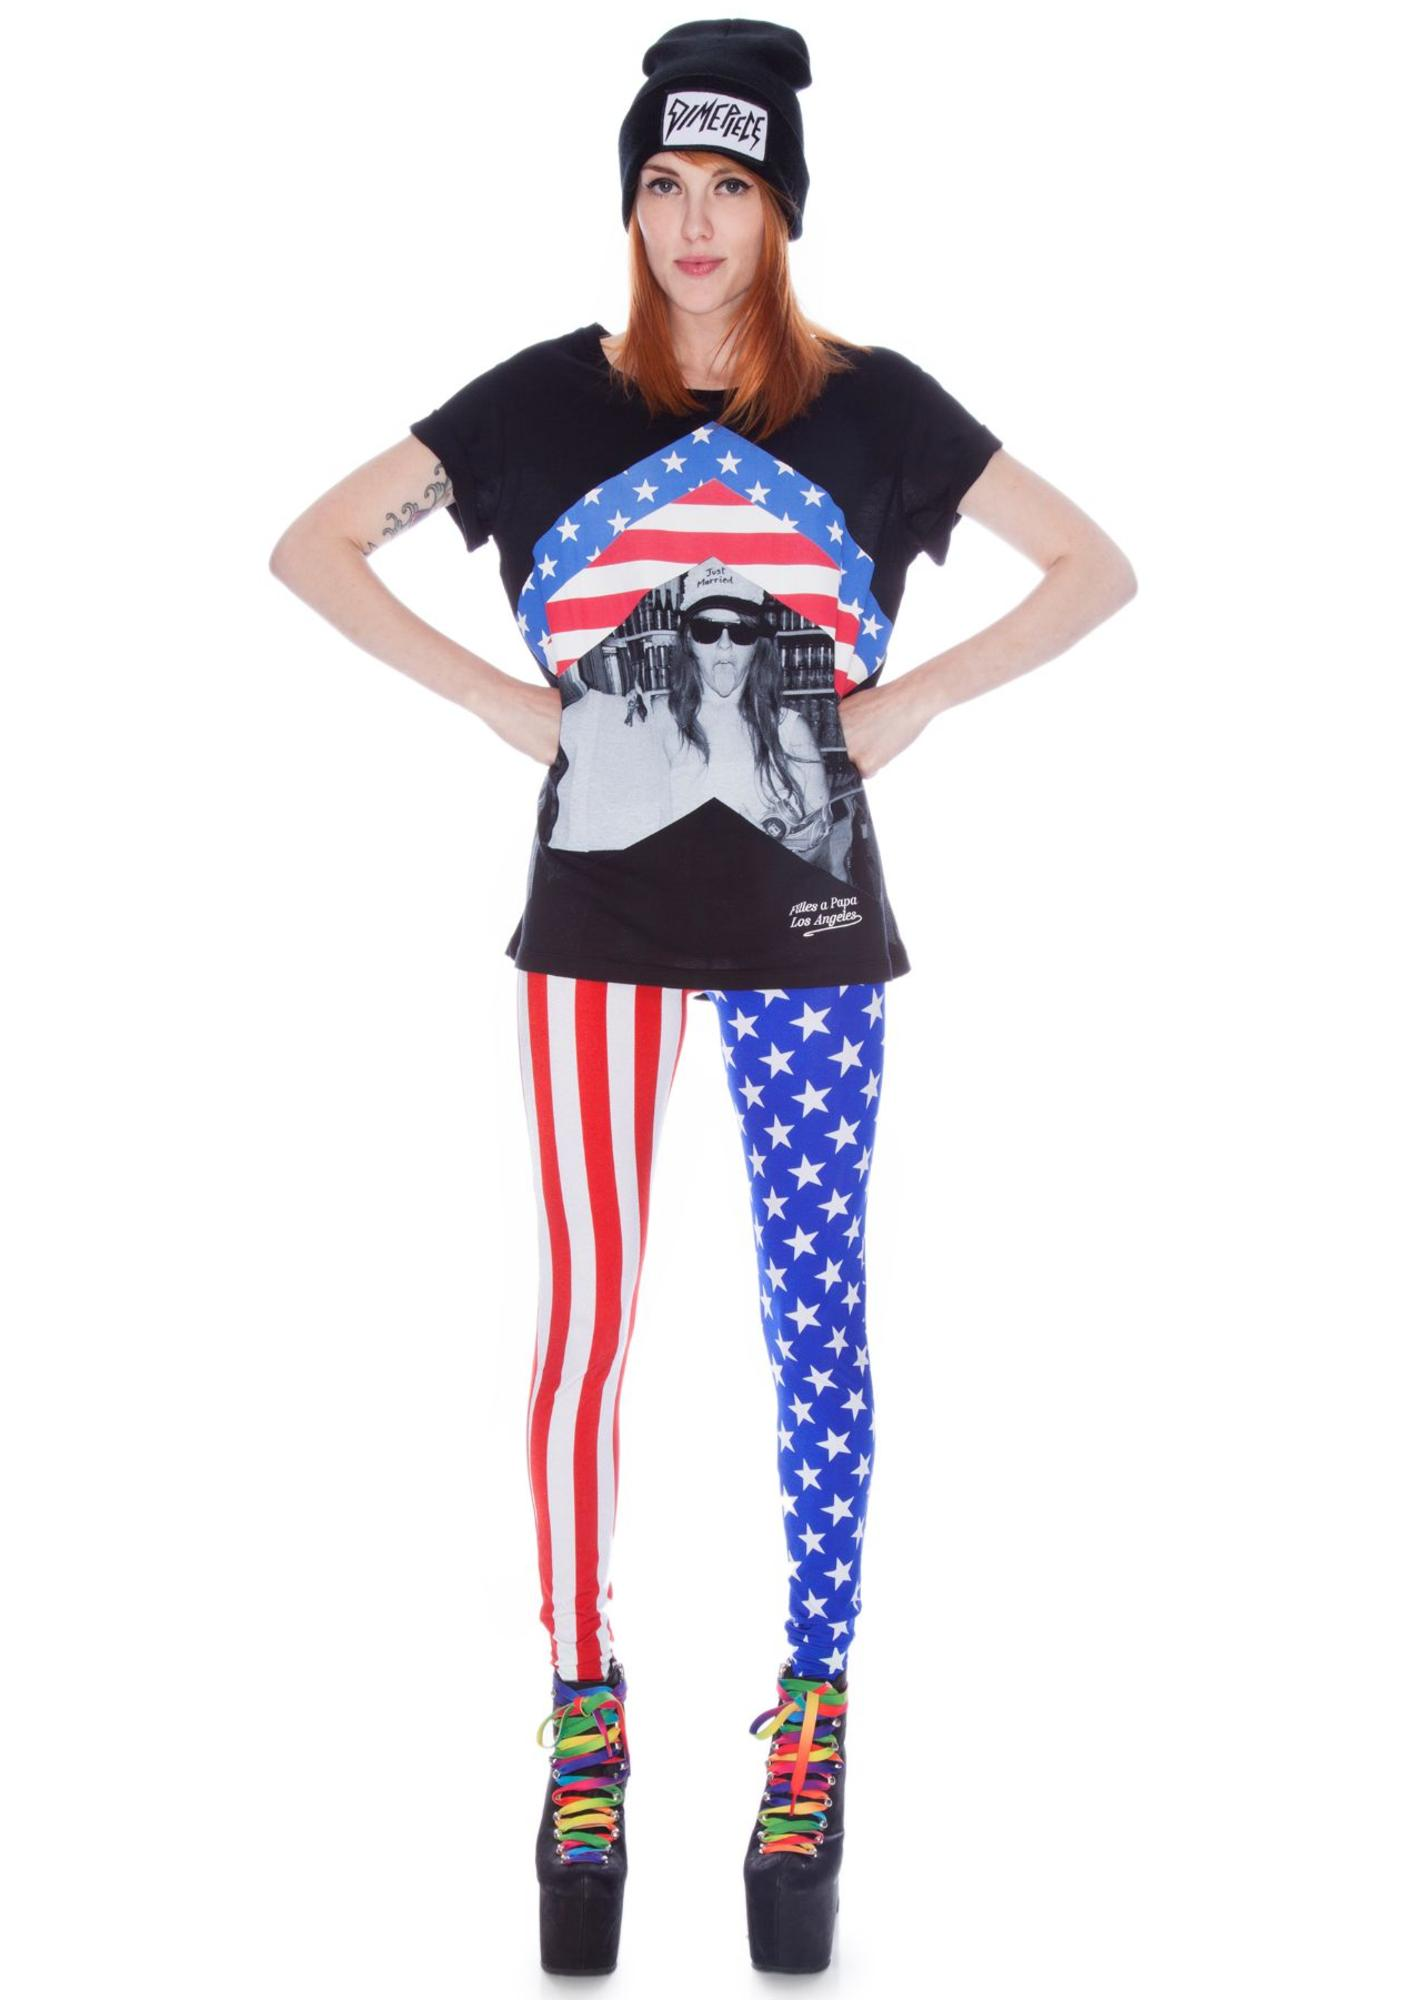 Our Prince of Peace Springsteen Leggings